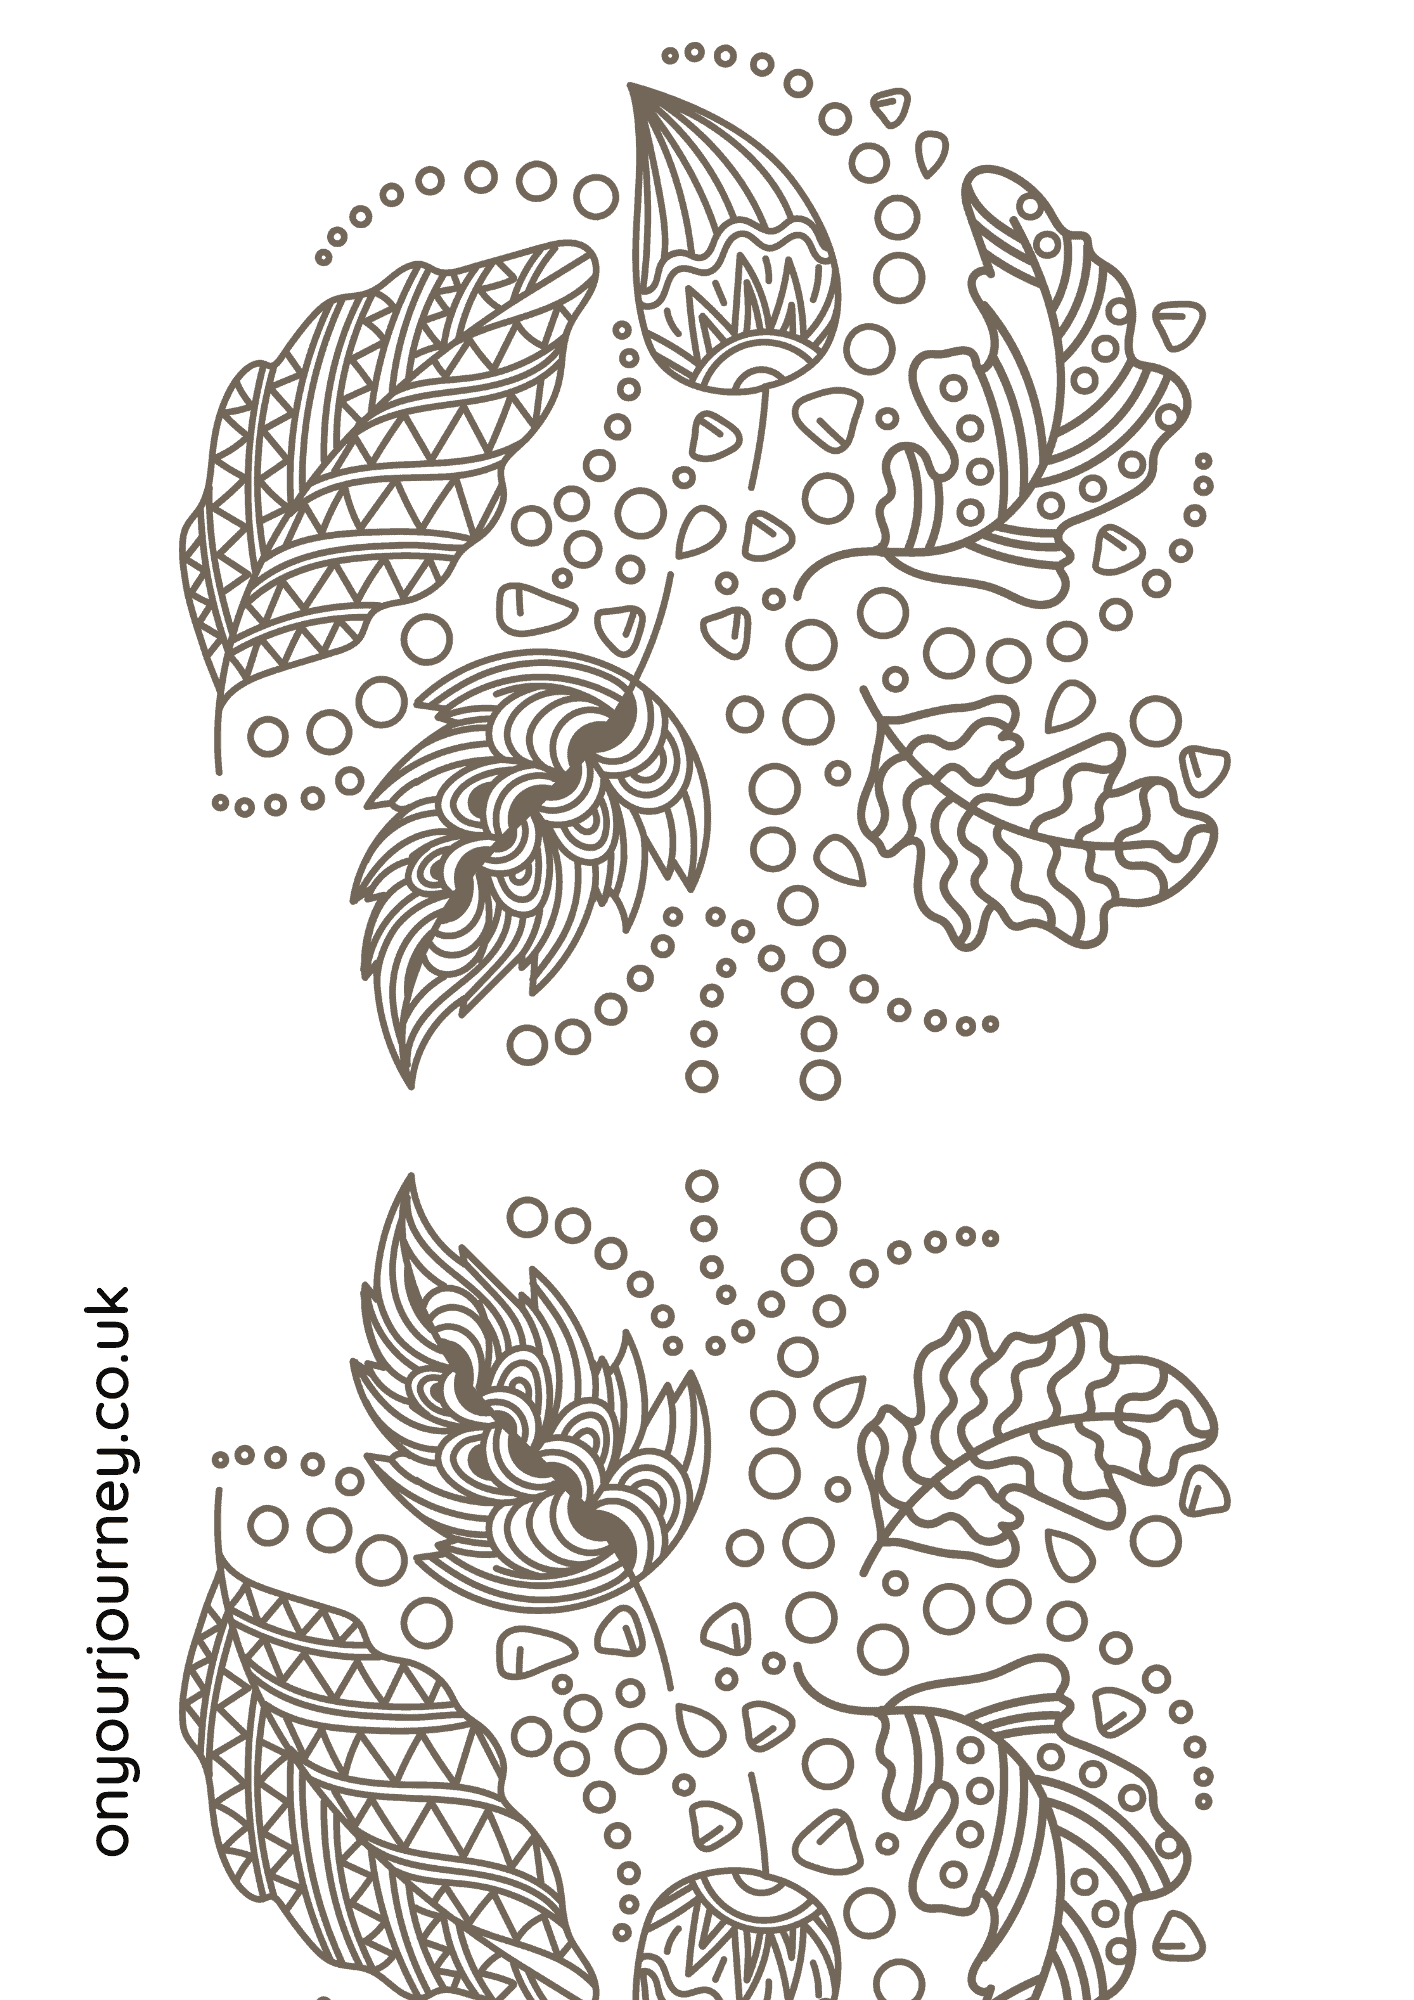 Detailed pattern coloring page for grown ups